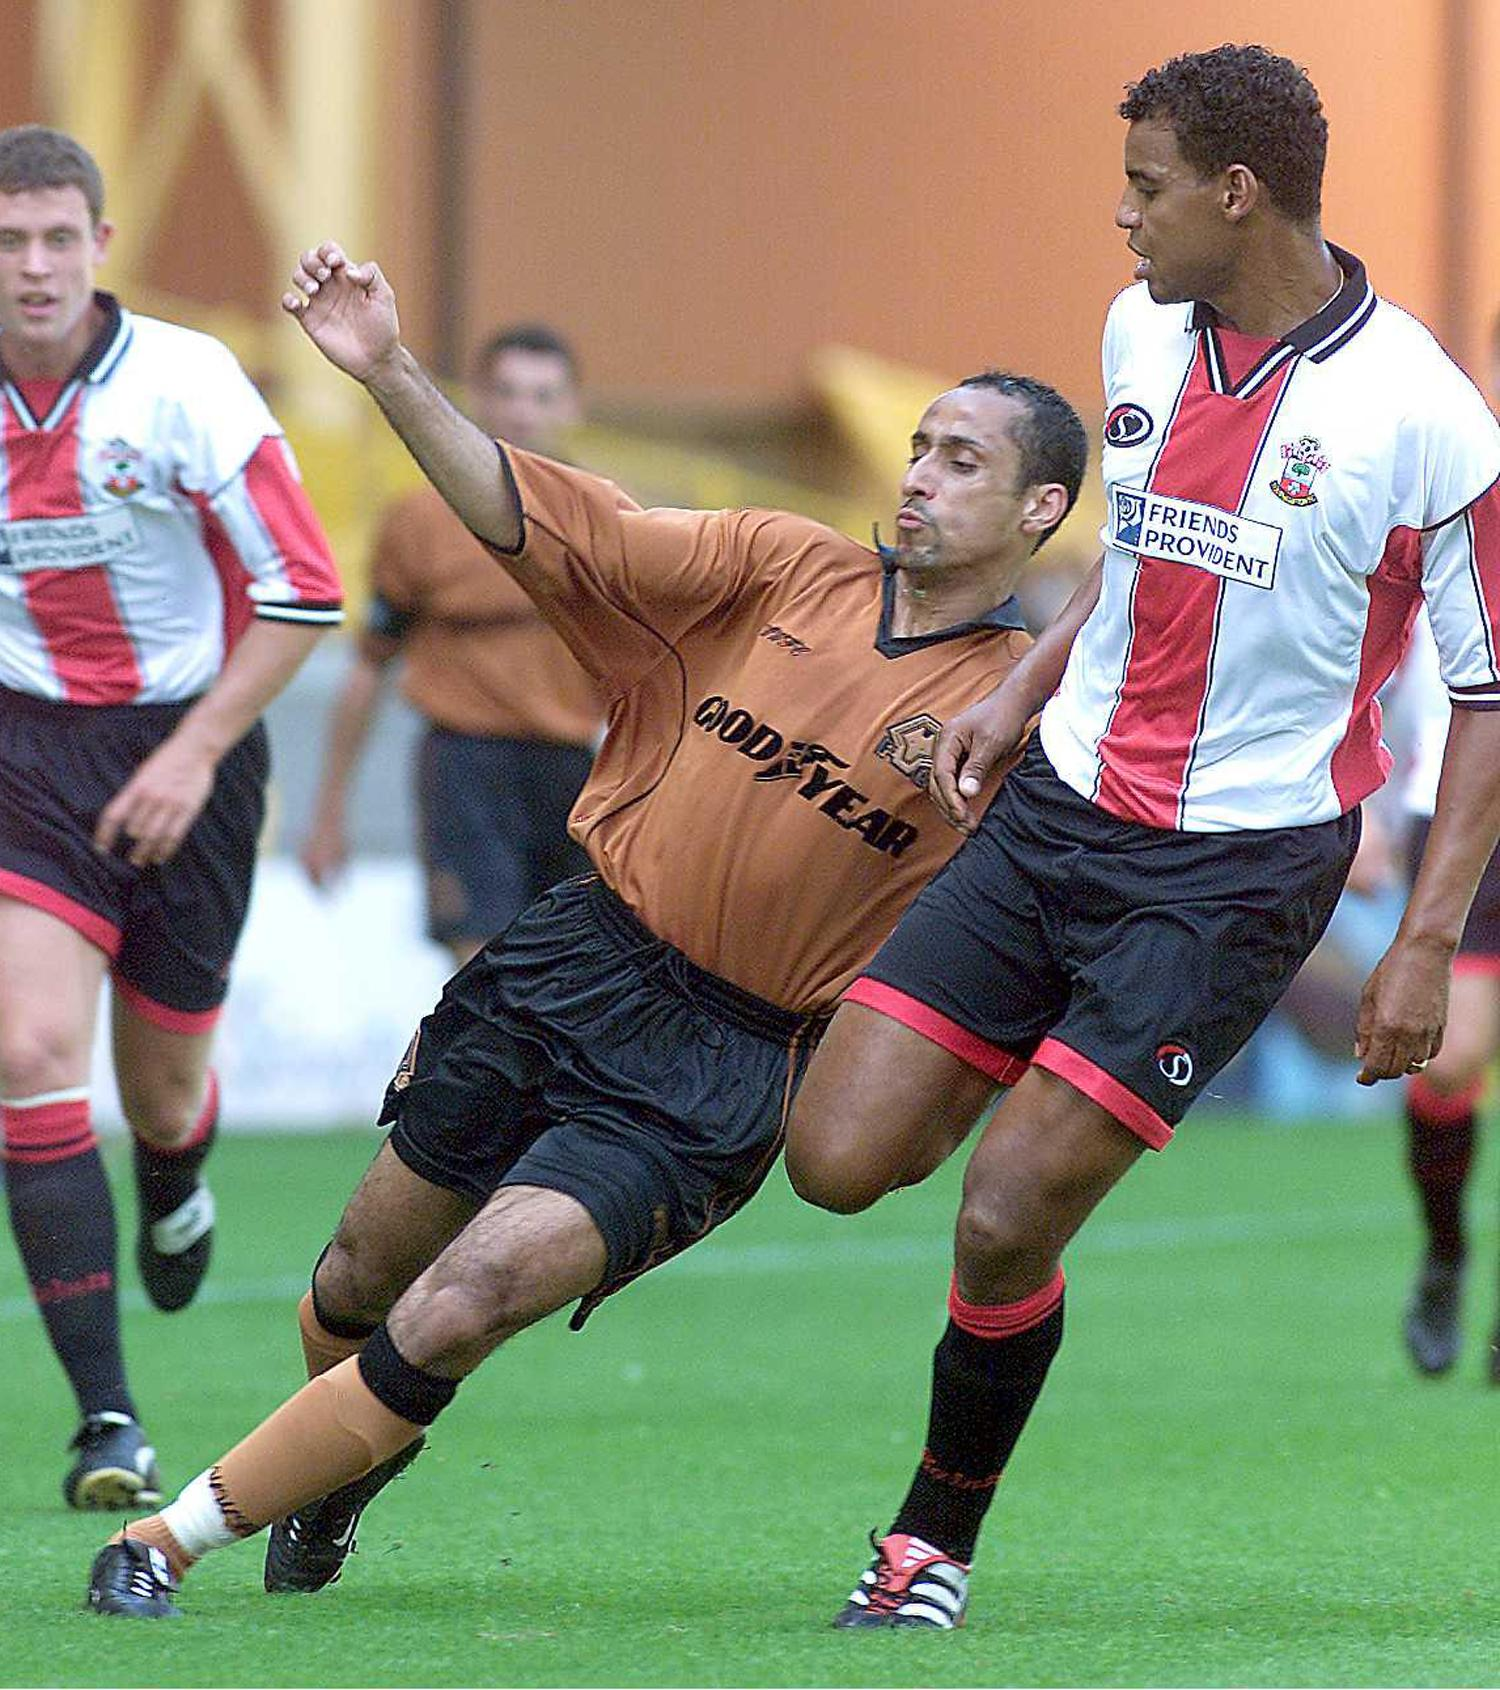 Make your own way: Saudi Arabia's Sami Al Jaber experienced a mixed time on loan at Wolverhampton Wanderers in 2000.